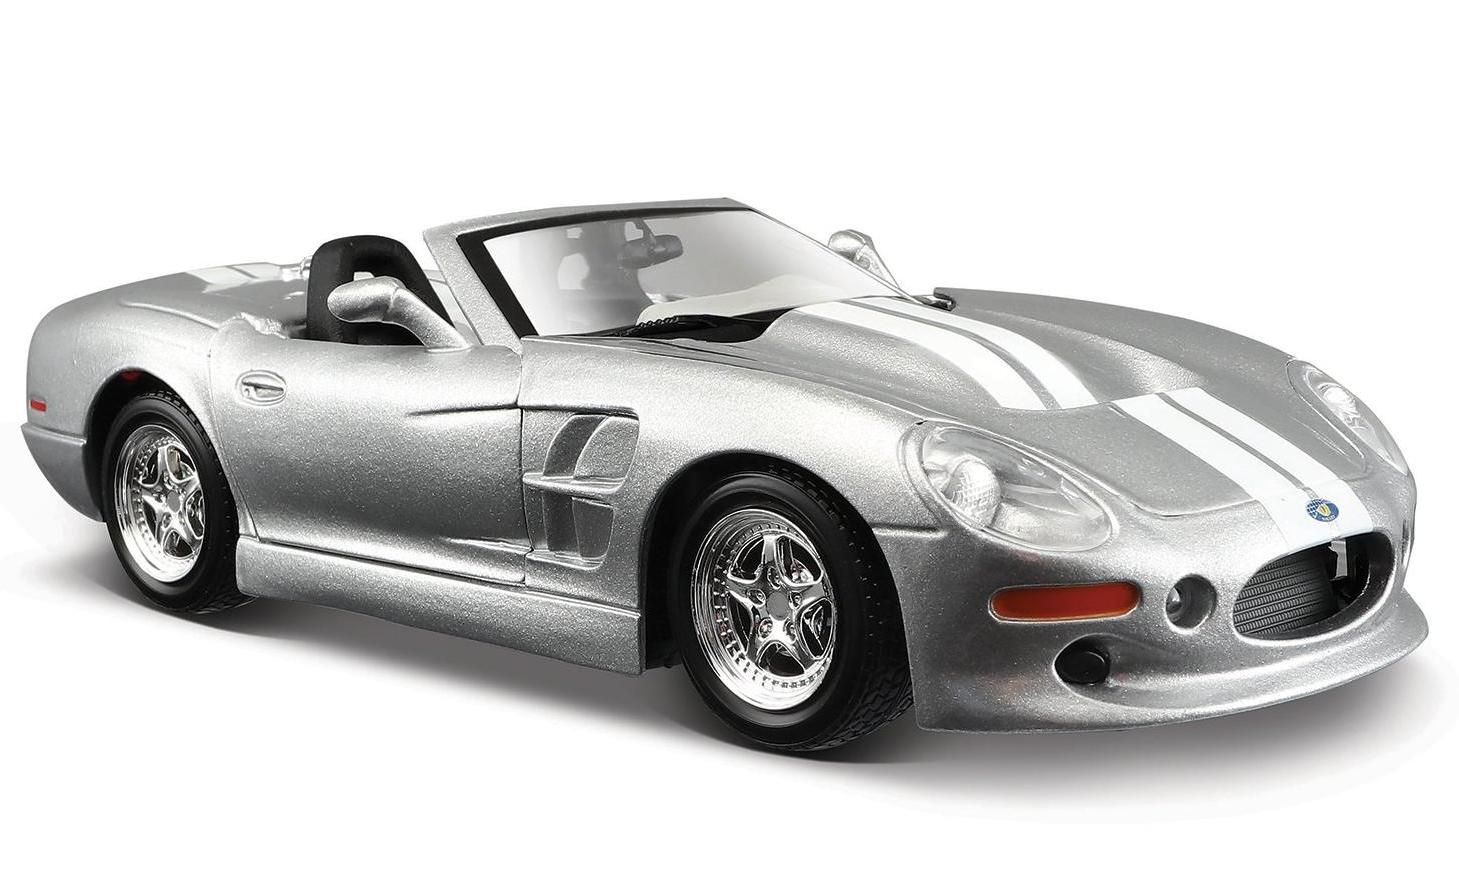 Машинка Maisto 1:24 Shelby Series One 1999, серебристая